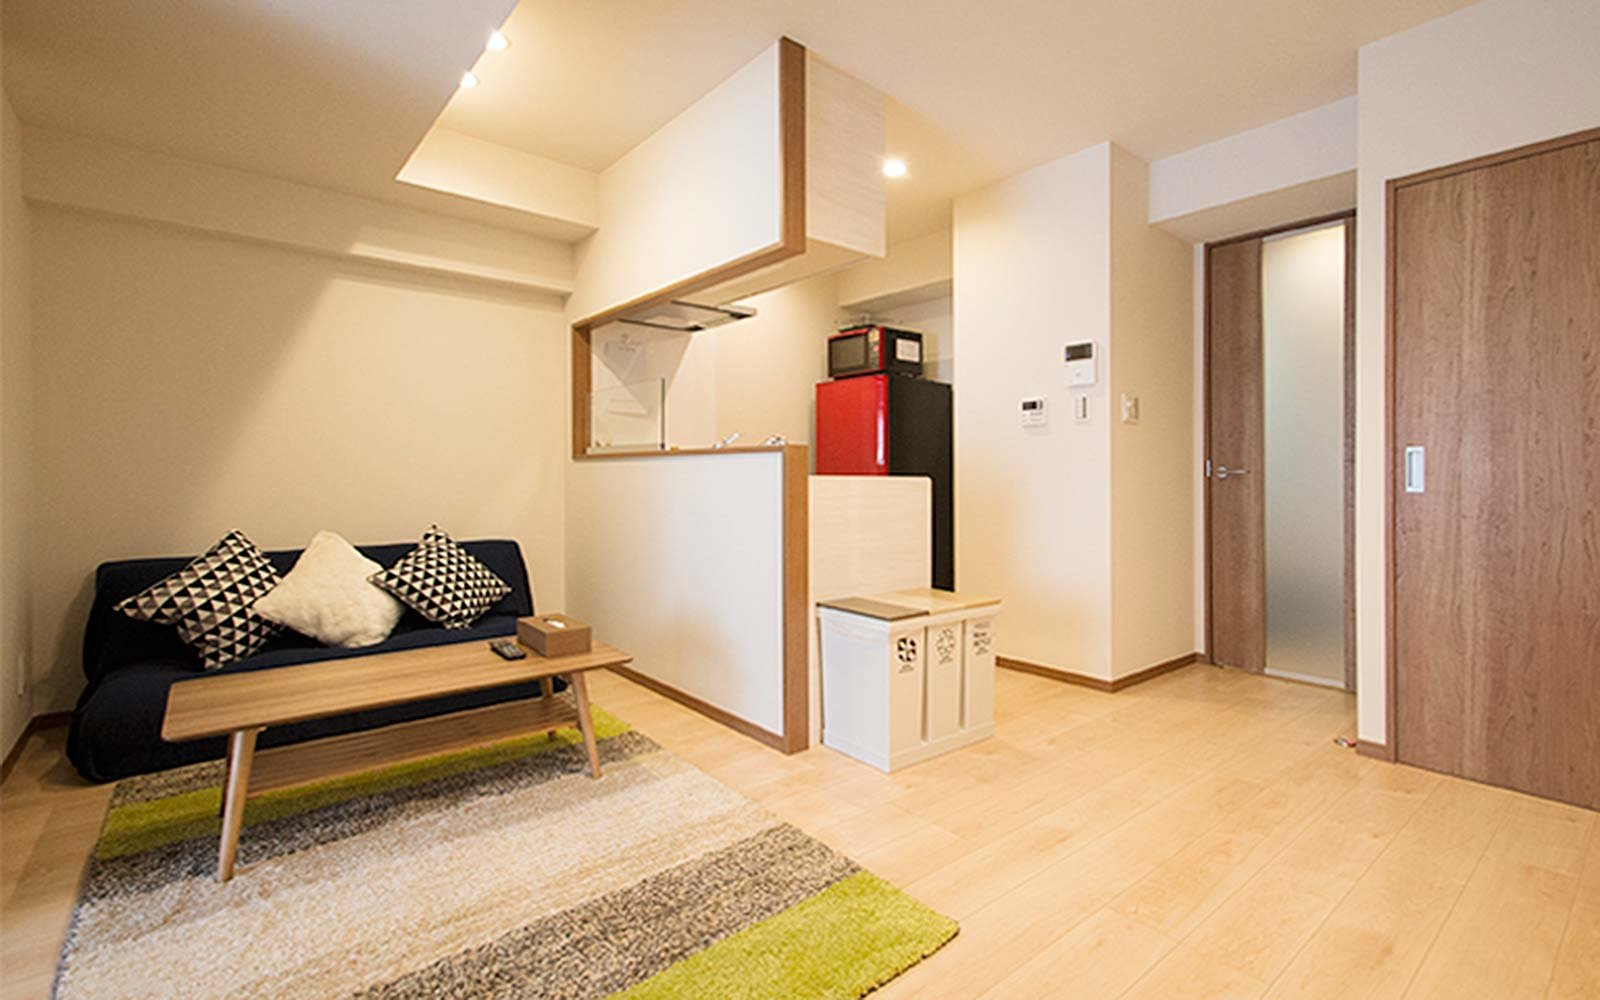 Best Airbnbs in Tokyo for Value | Travel + Leisure